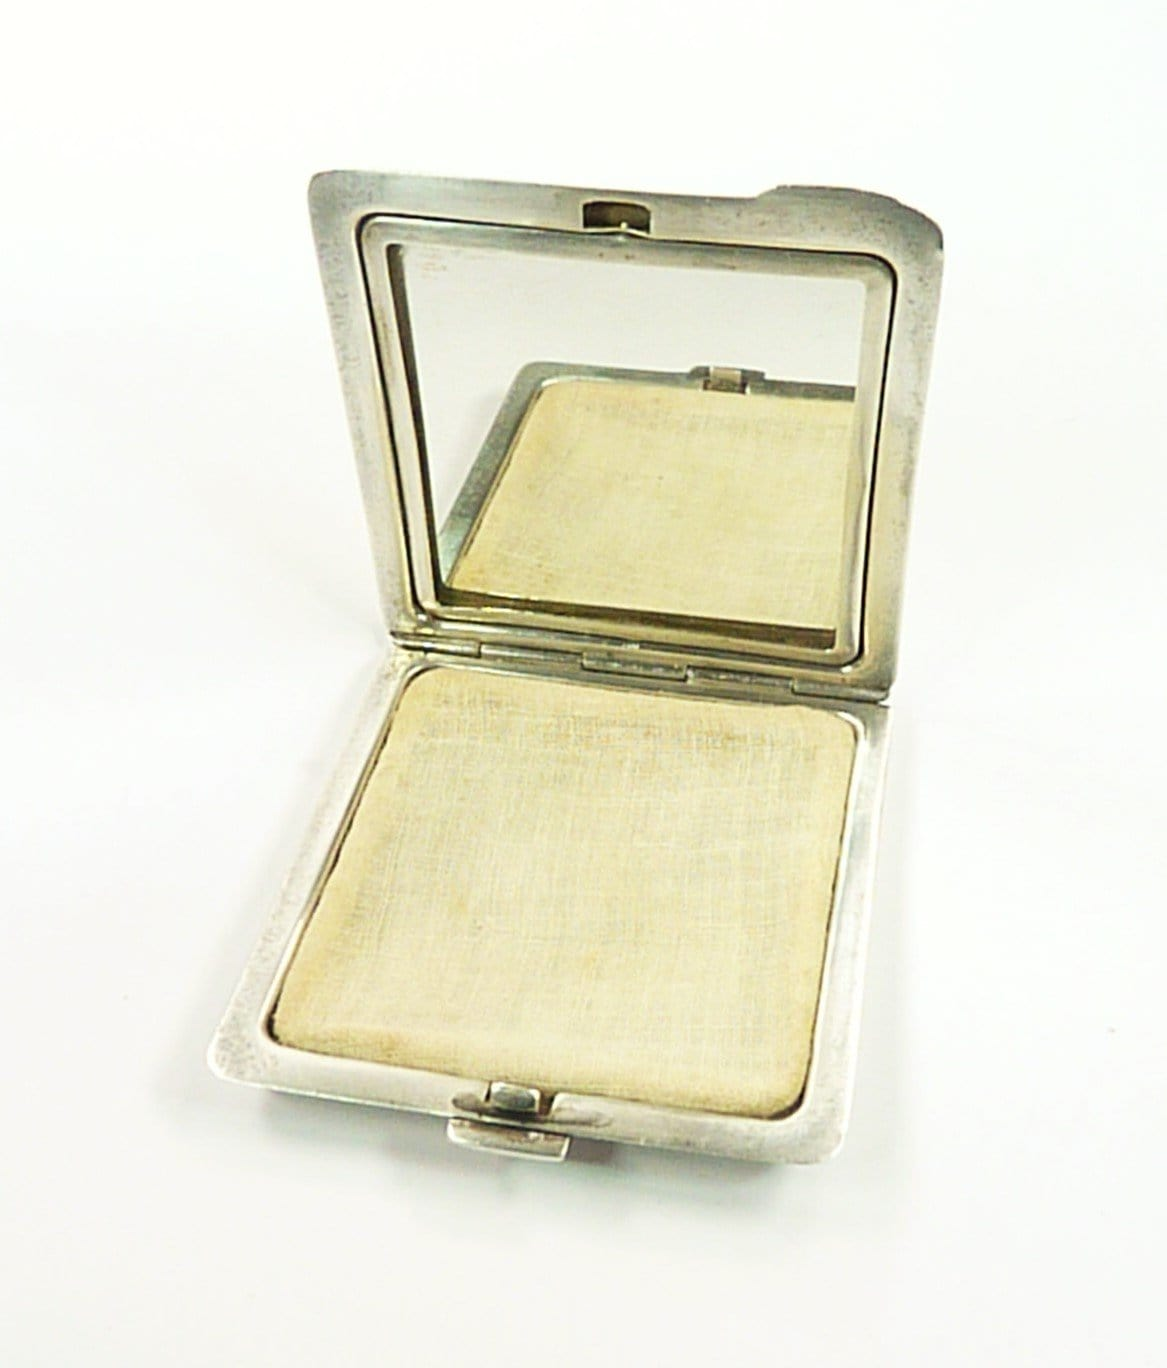 Silver Makeup Compact For Loose Face Powder